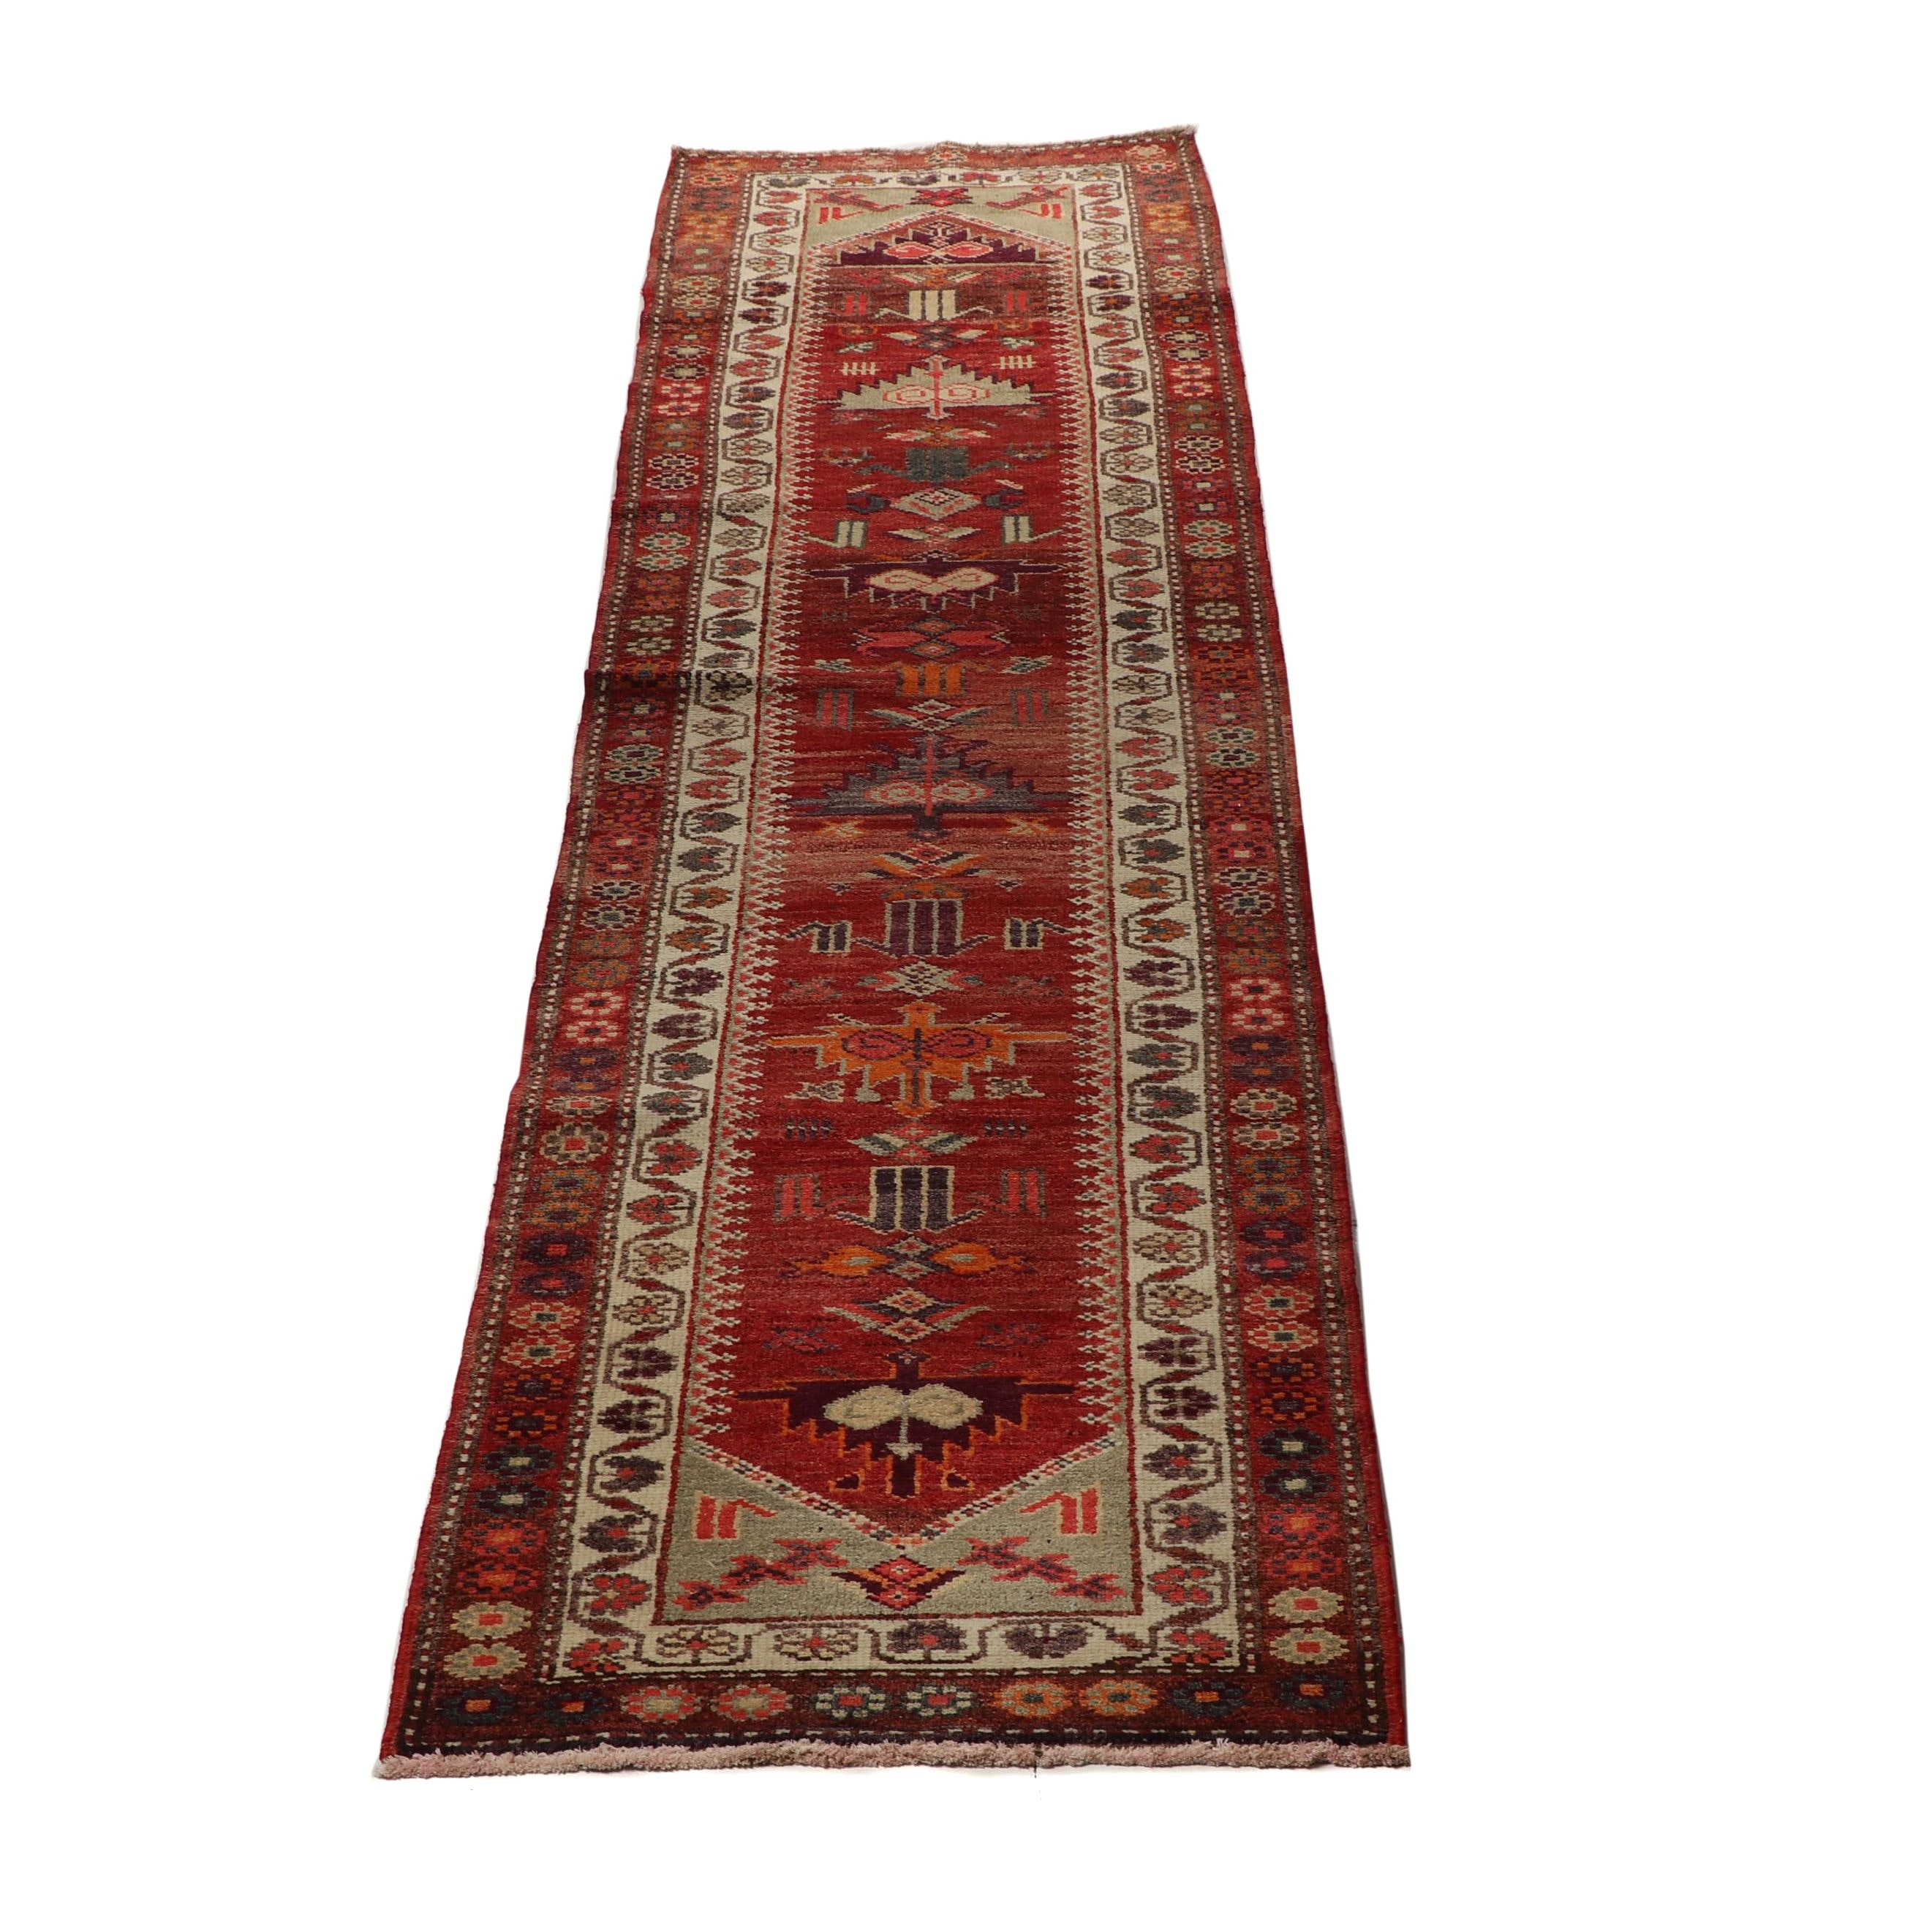 Hand-Knotted Turkish Wool Carpet Runner